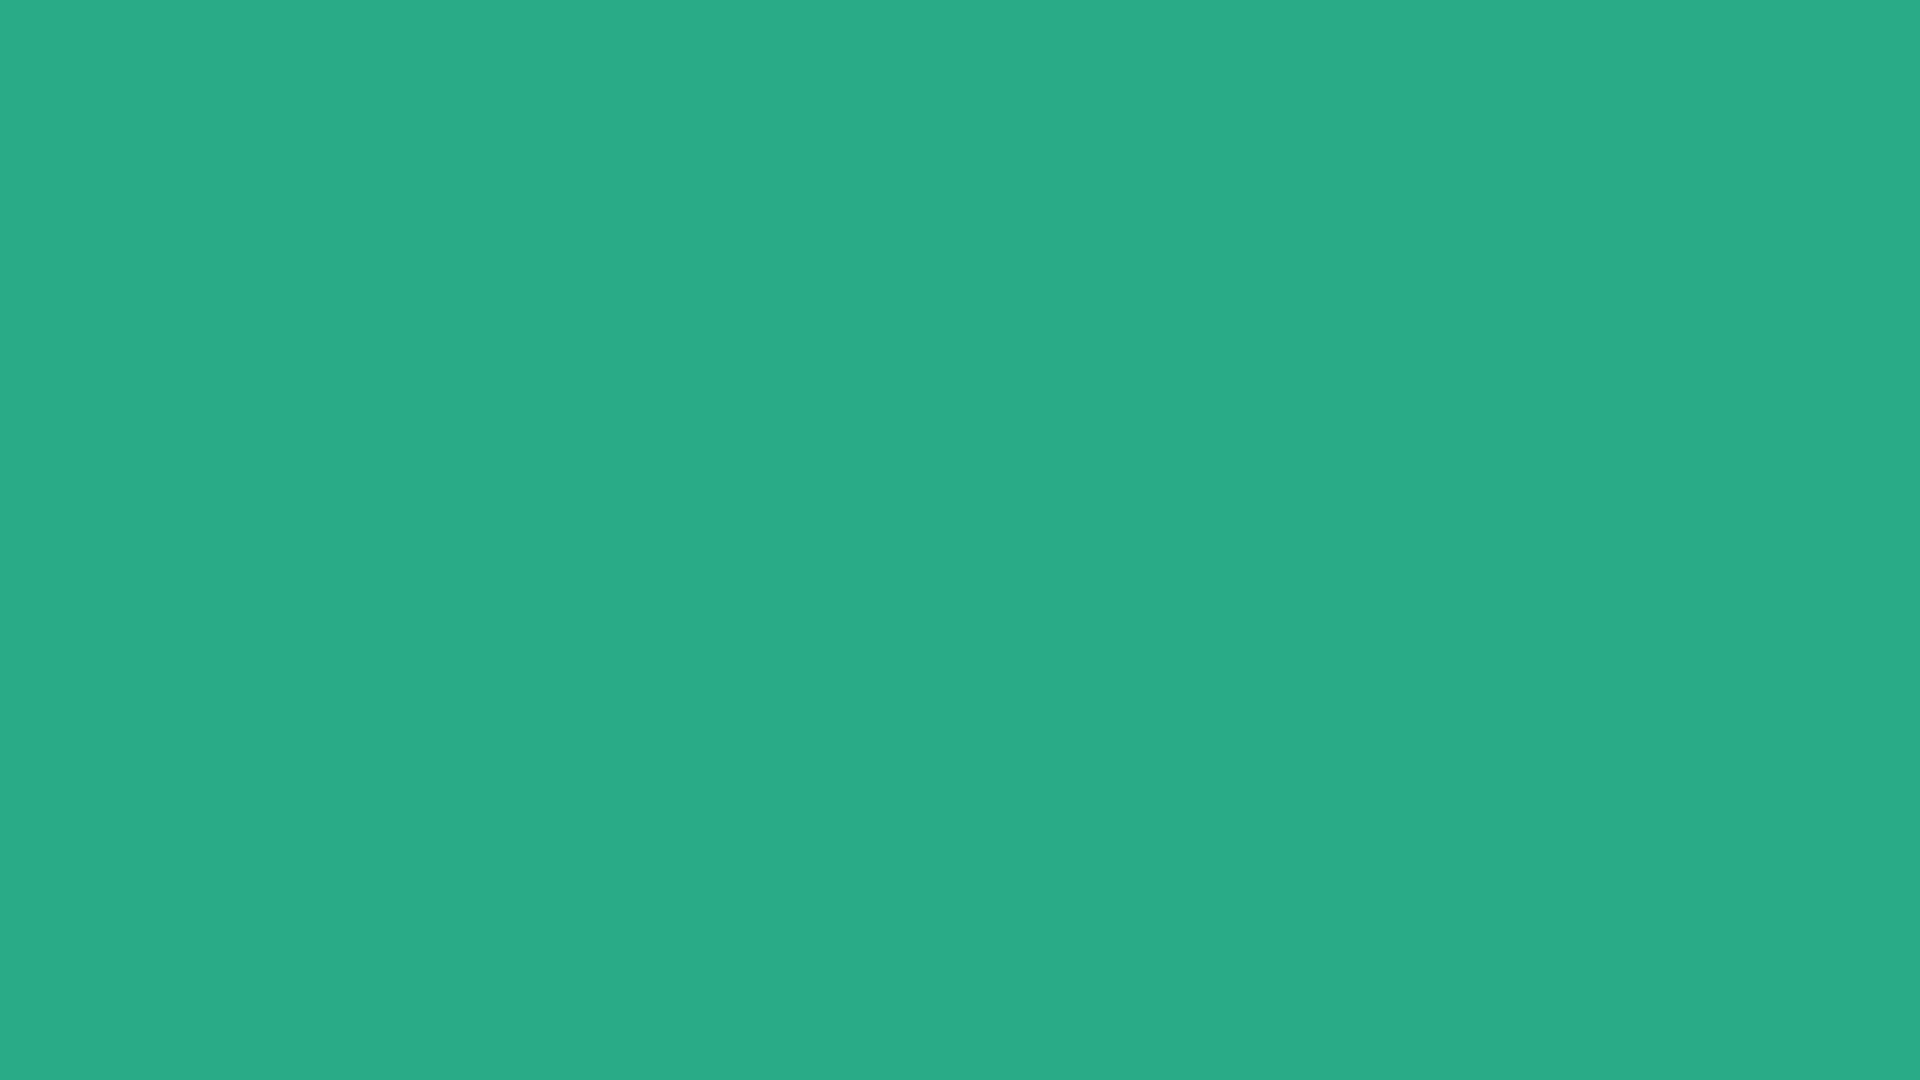 1920x1080 Jungle Green Solid Color Background